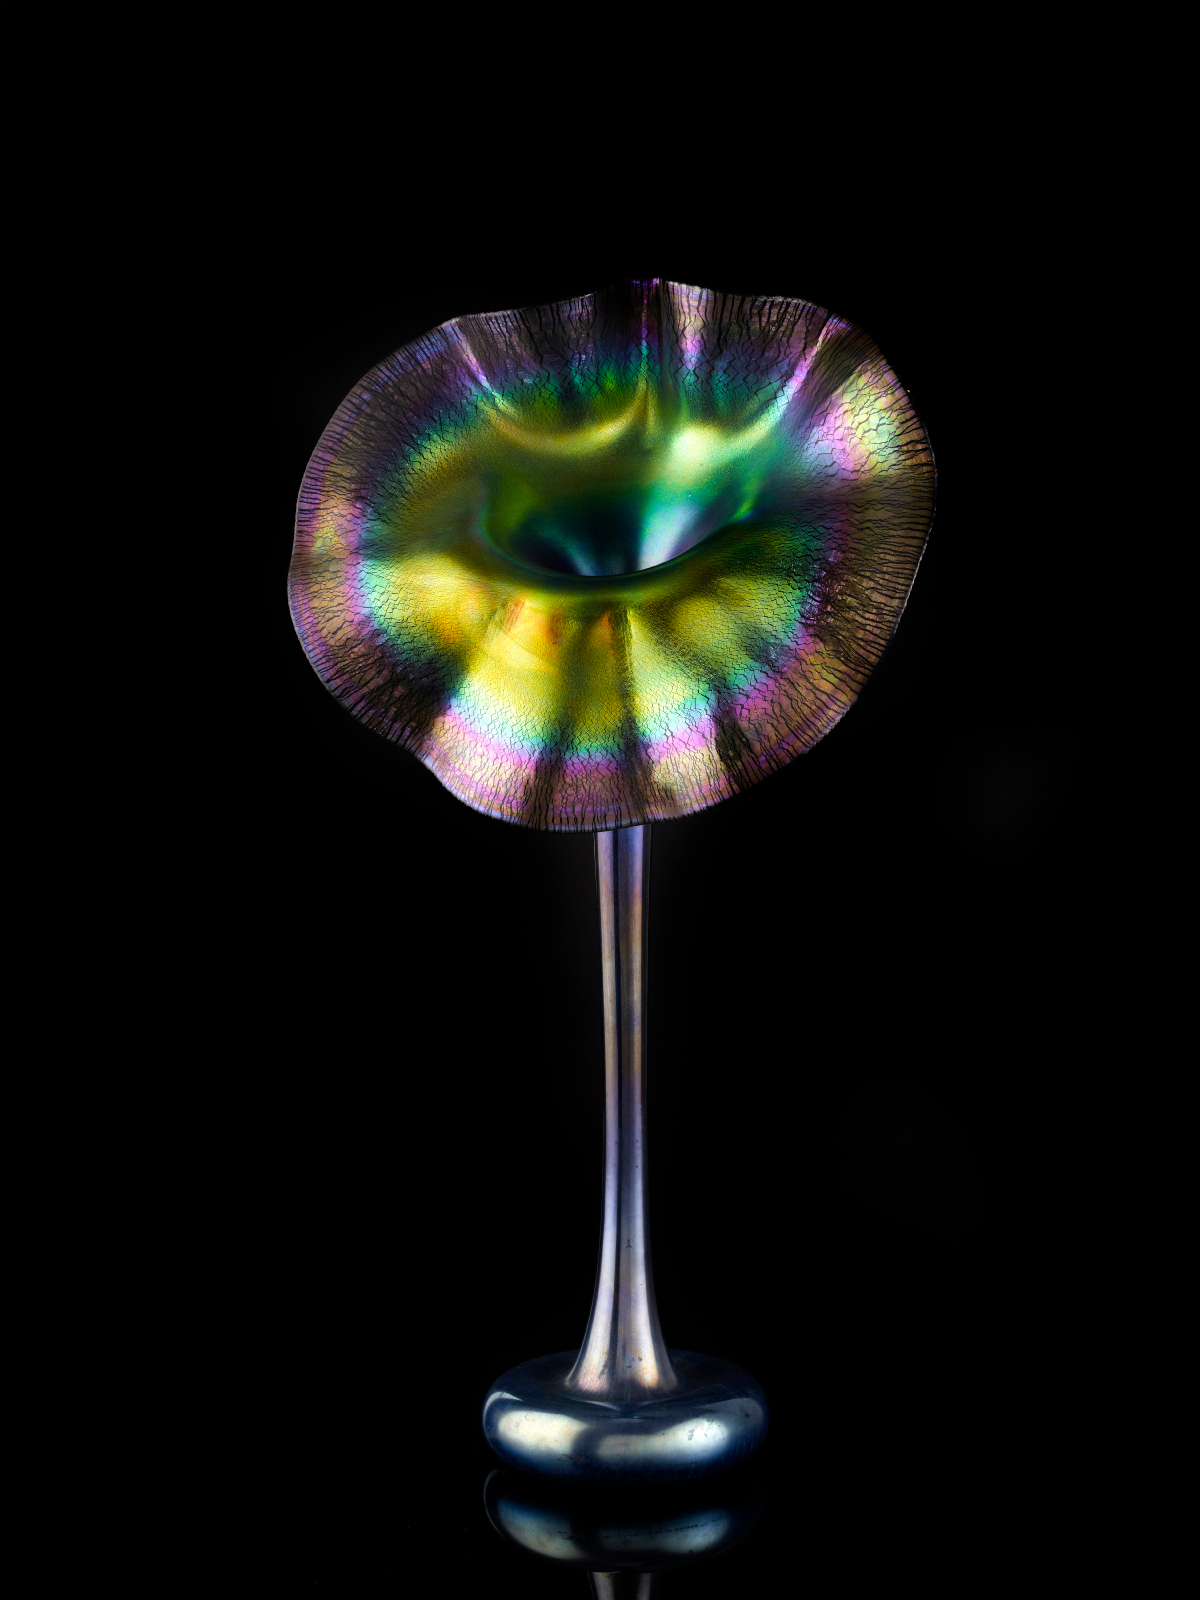 Tiffany Studios, Jack-in-the-Pulpit Vase, 1907–10, blown glass. Photograph by John Faier. © 2013 Driehaus Museum